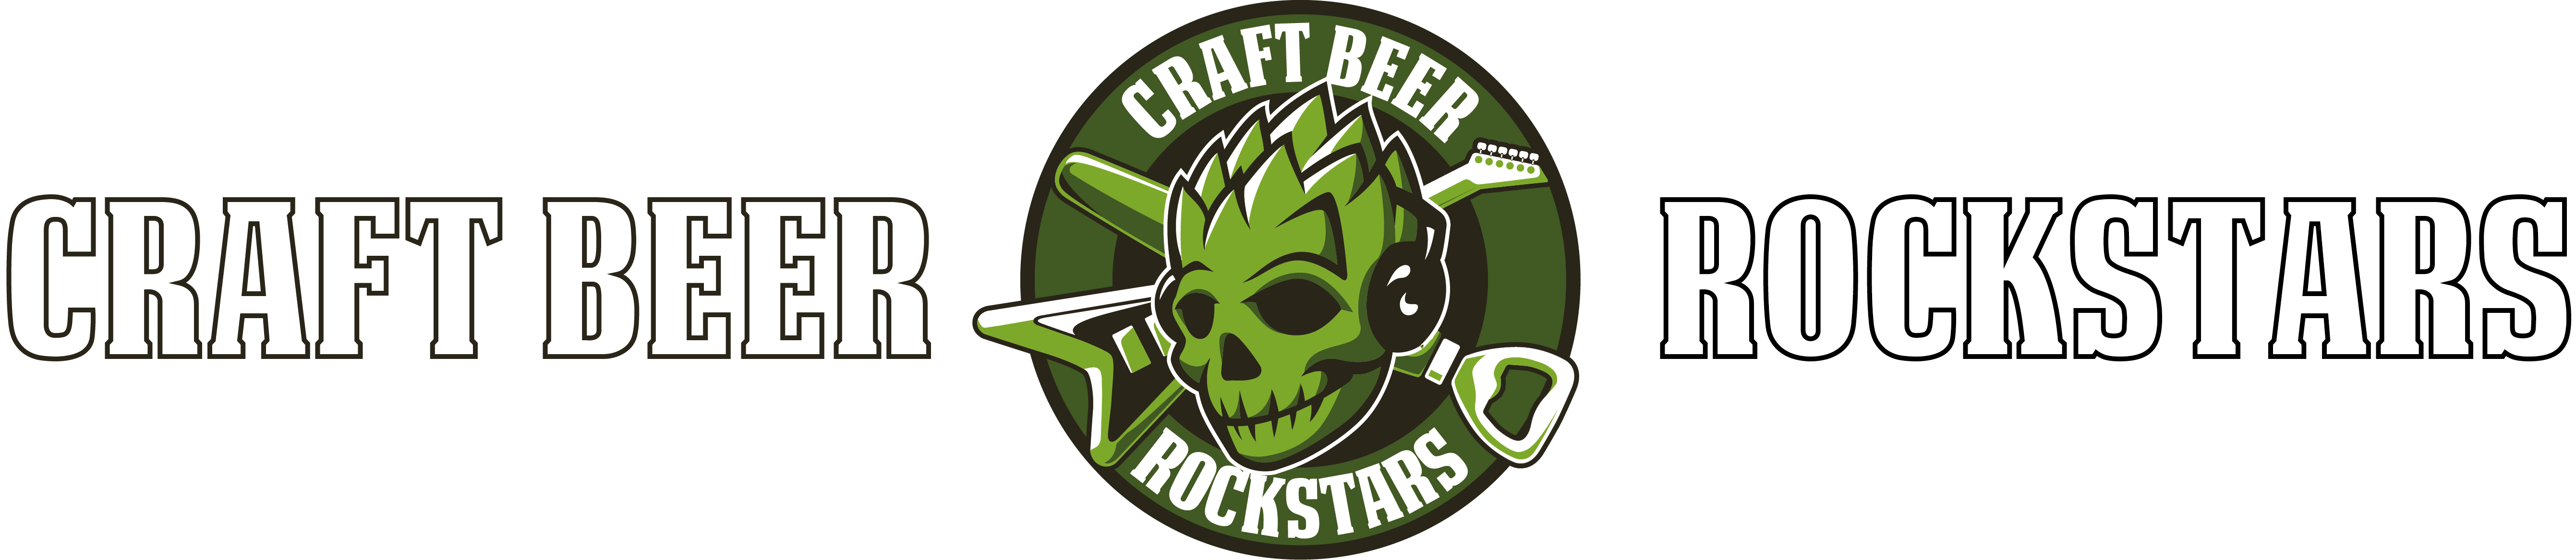 Craft Beer Rockstars